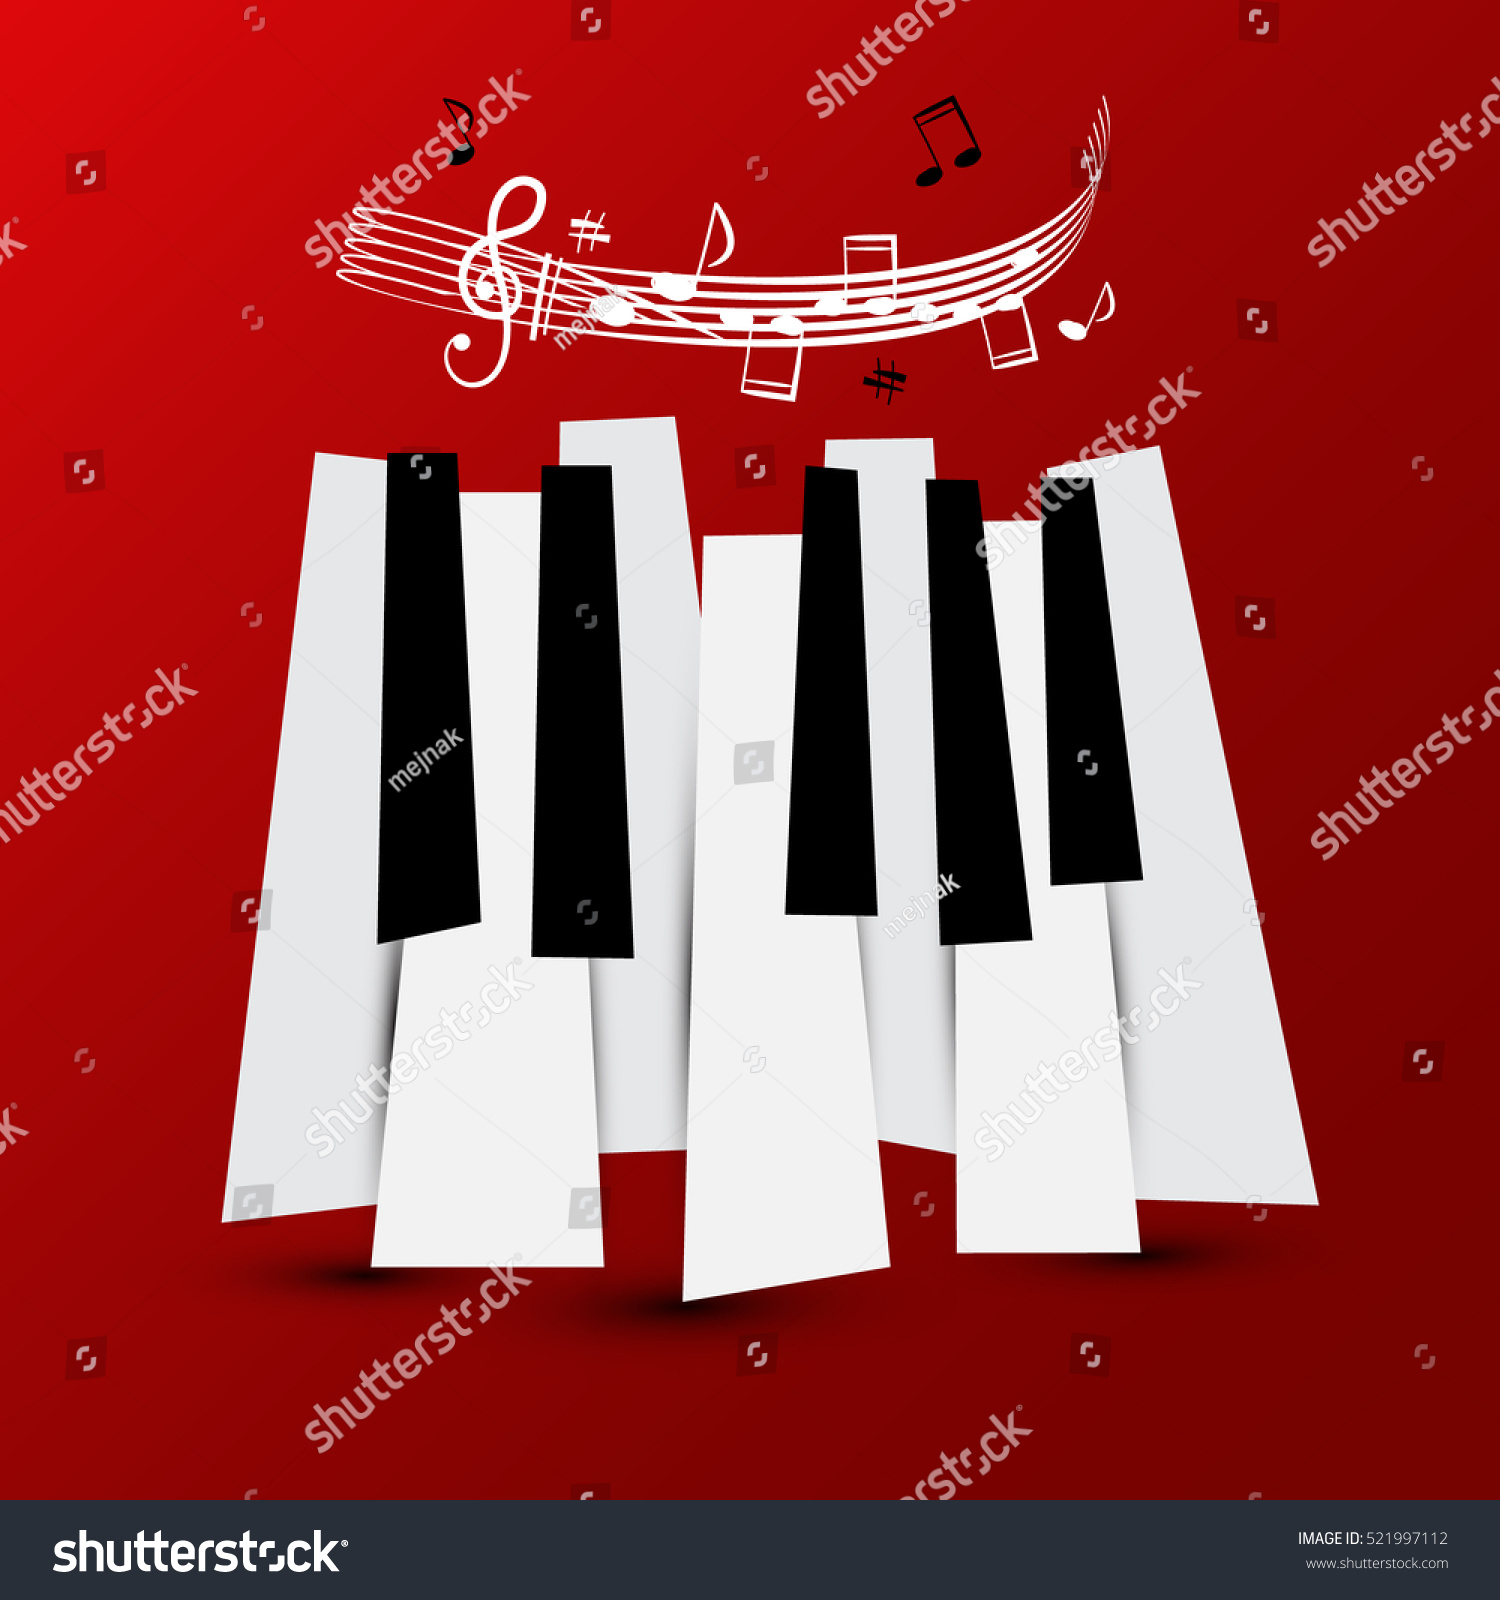 Music symbol vector piano keys staff stock vector 521997112 music symbol vector piano keys with staff and notes keyboard on red background biocorpaavc Image collections